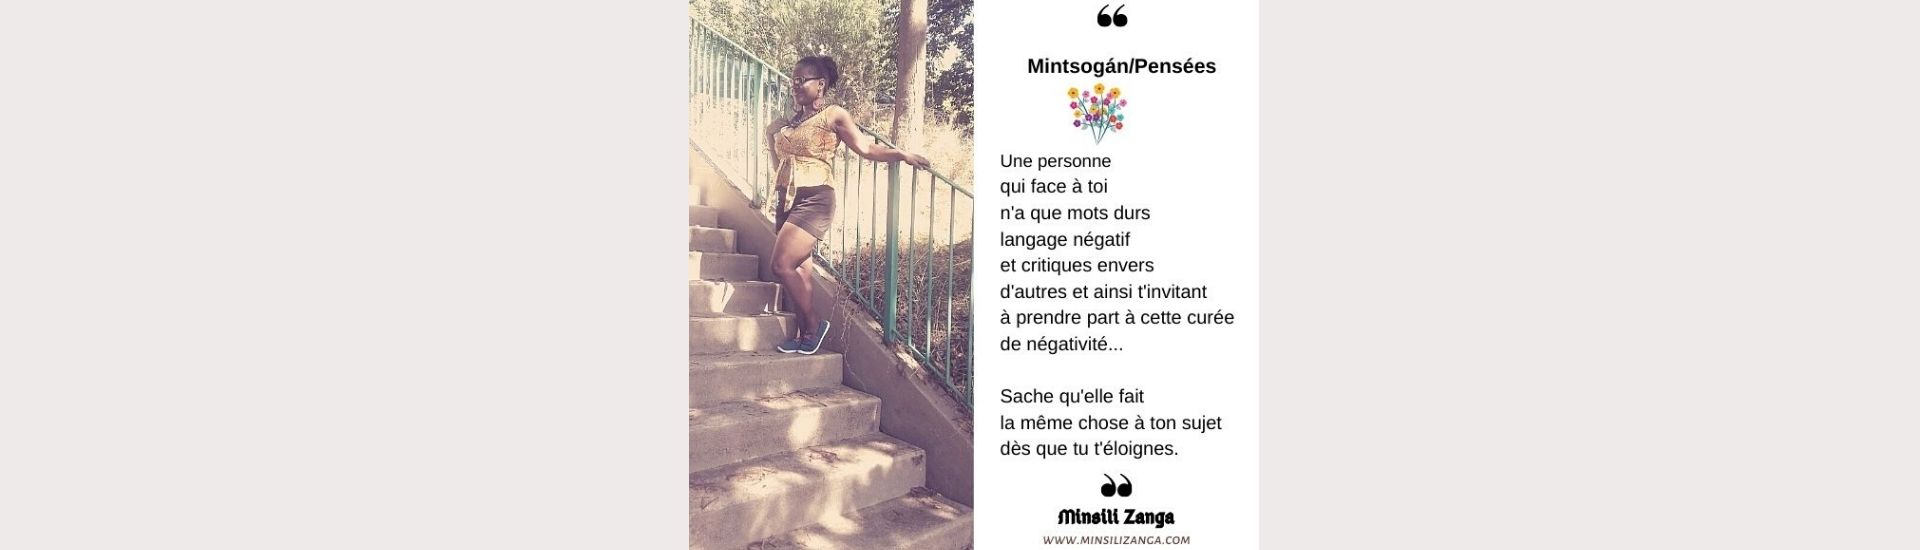 minsili-poetry-quotes-personnes-negatives